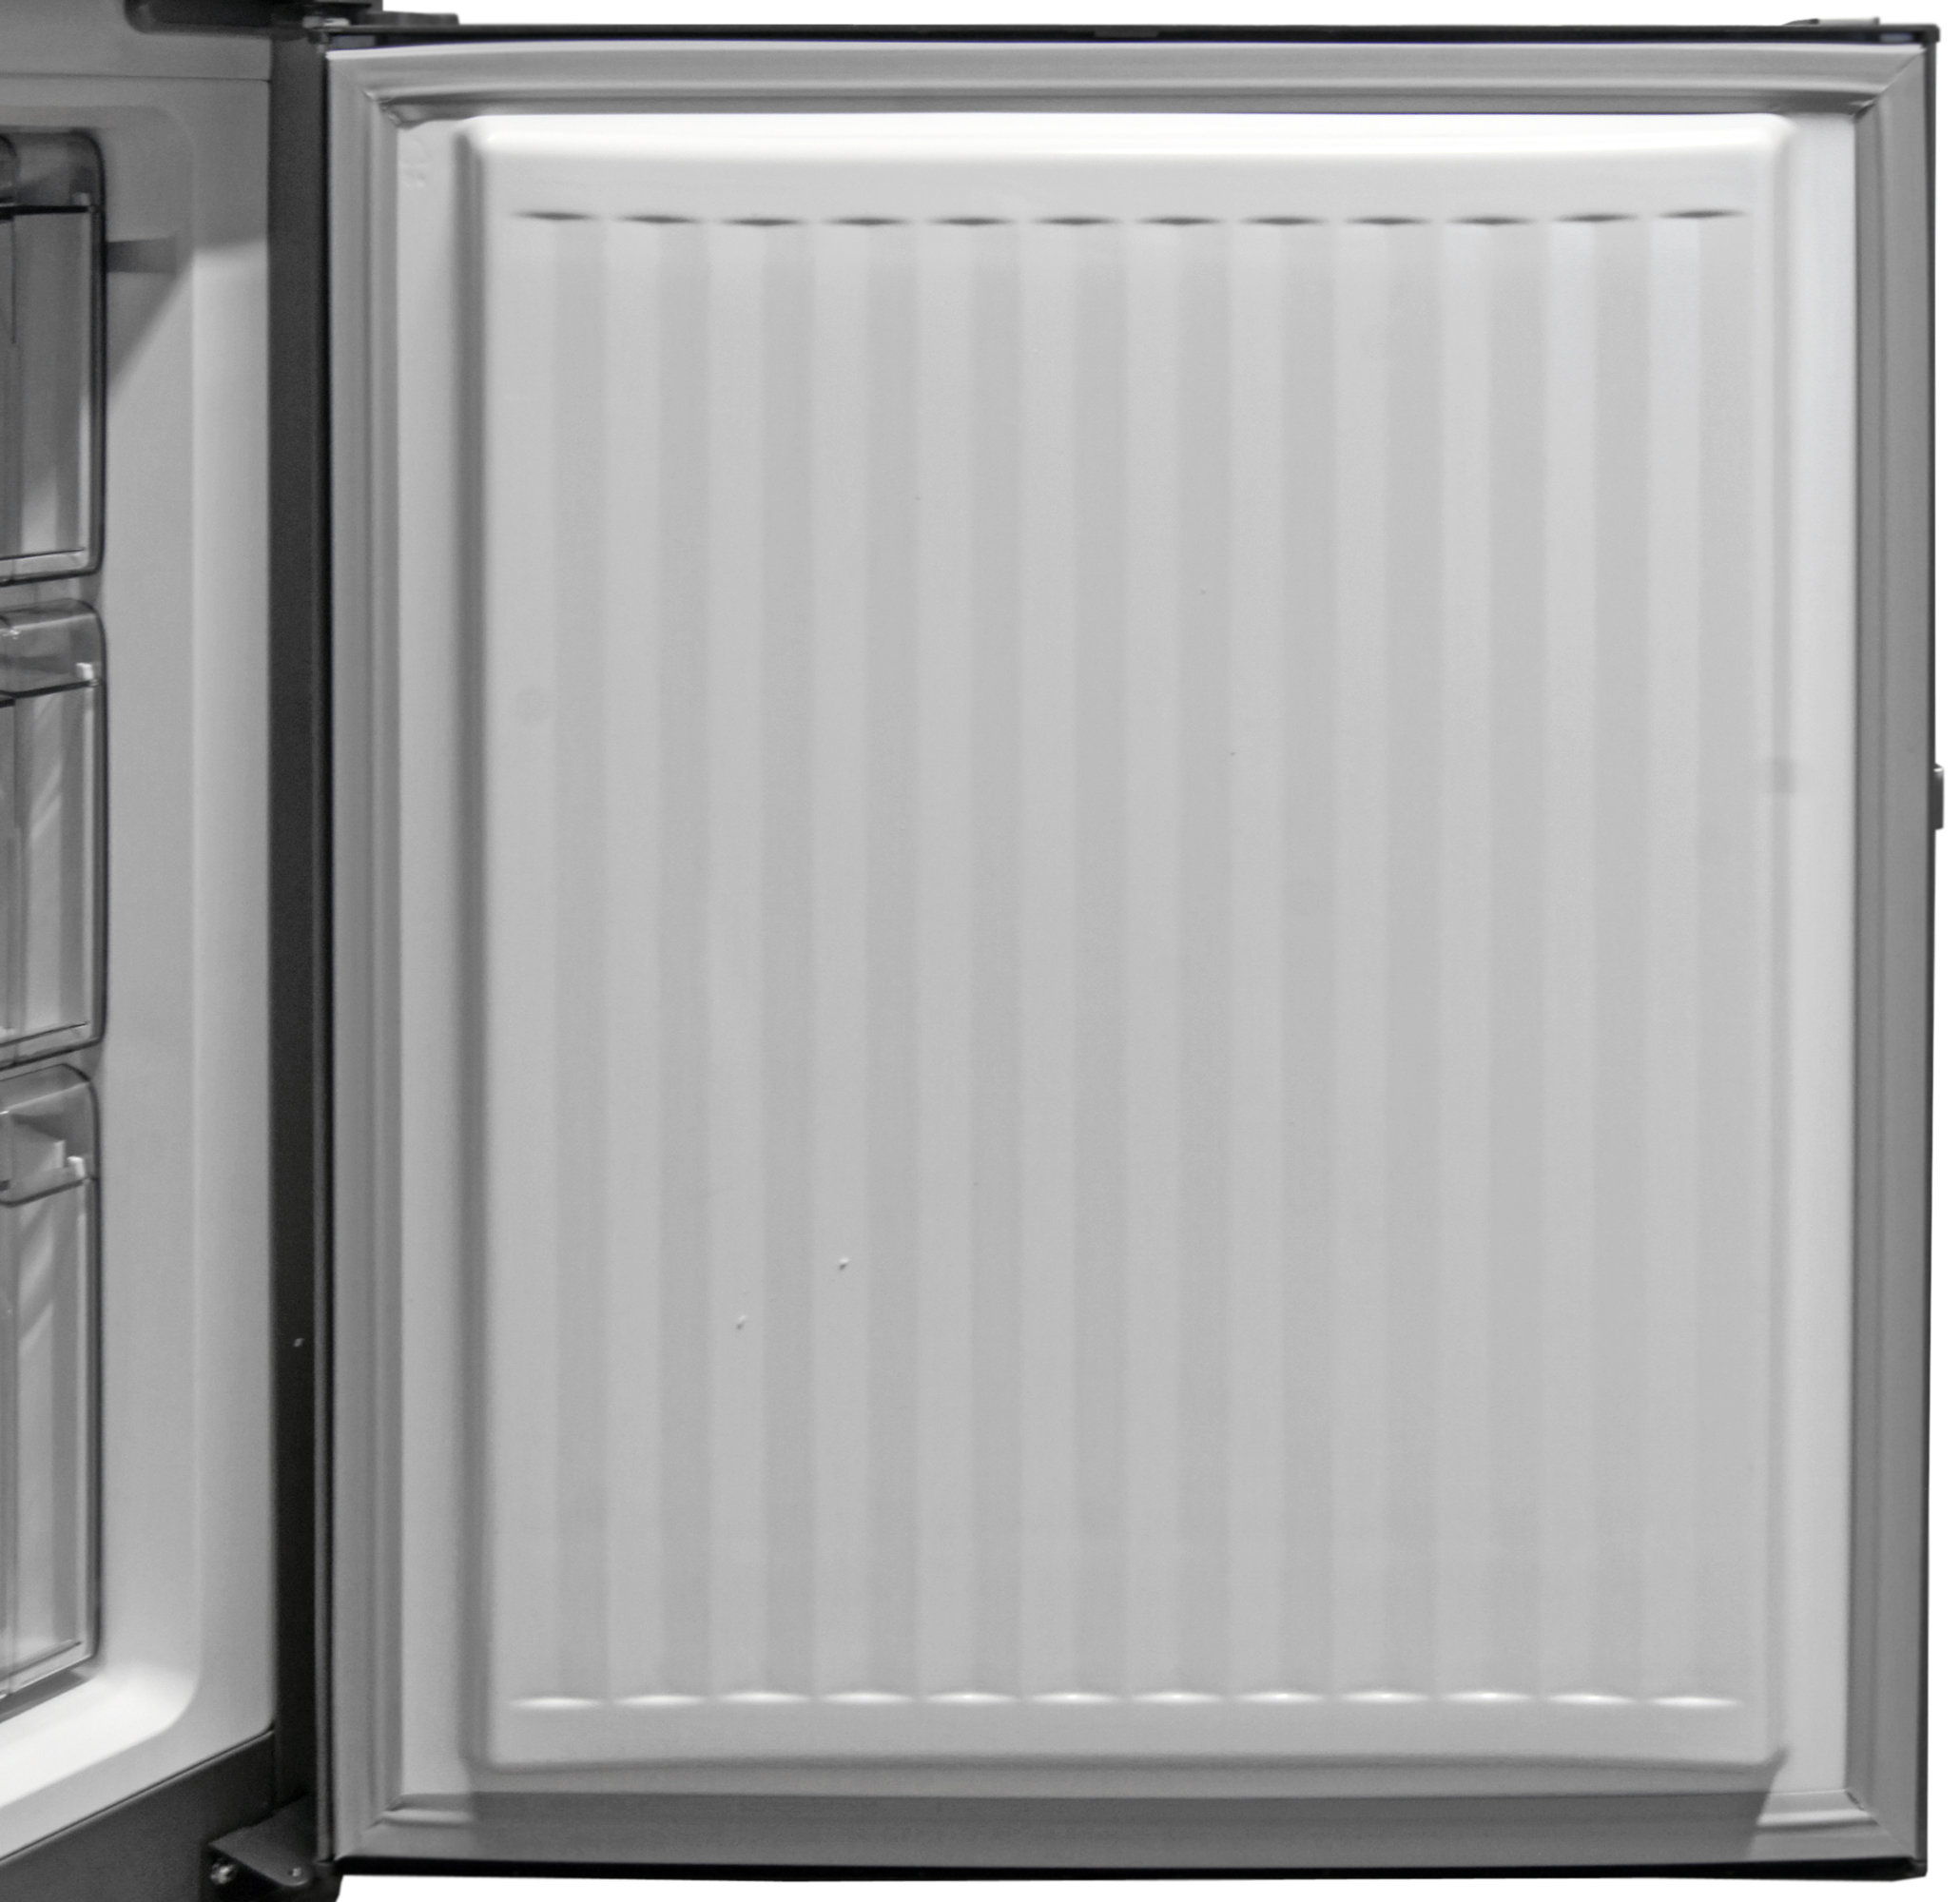 Like almost all apartment models, the Fagor FFJA4845X has no door storage in its freezer.